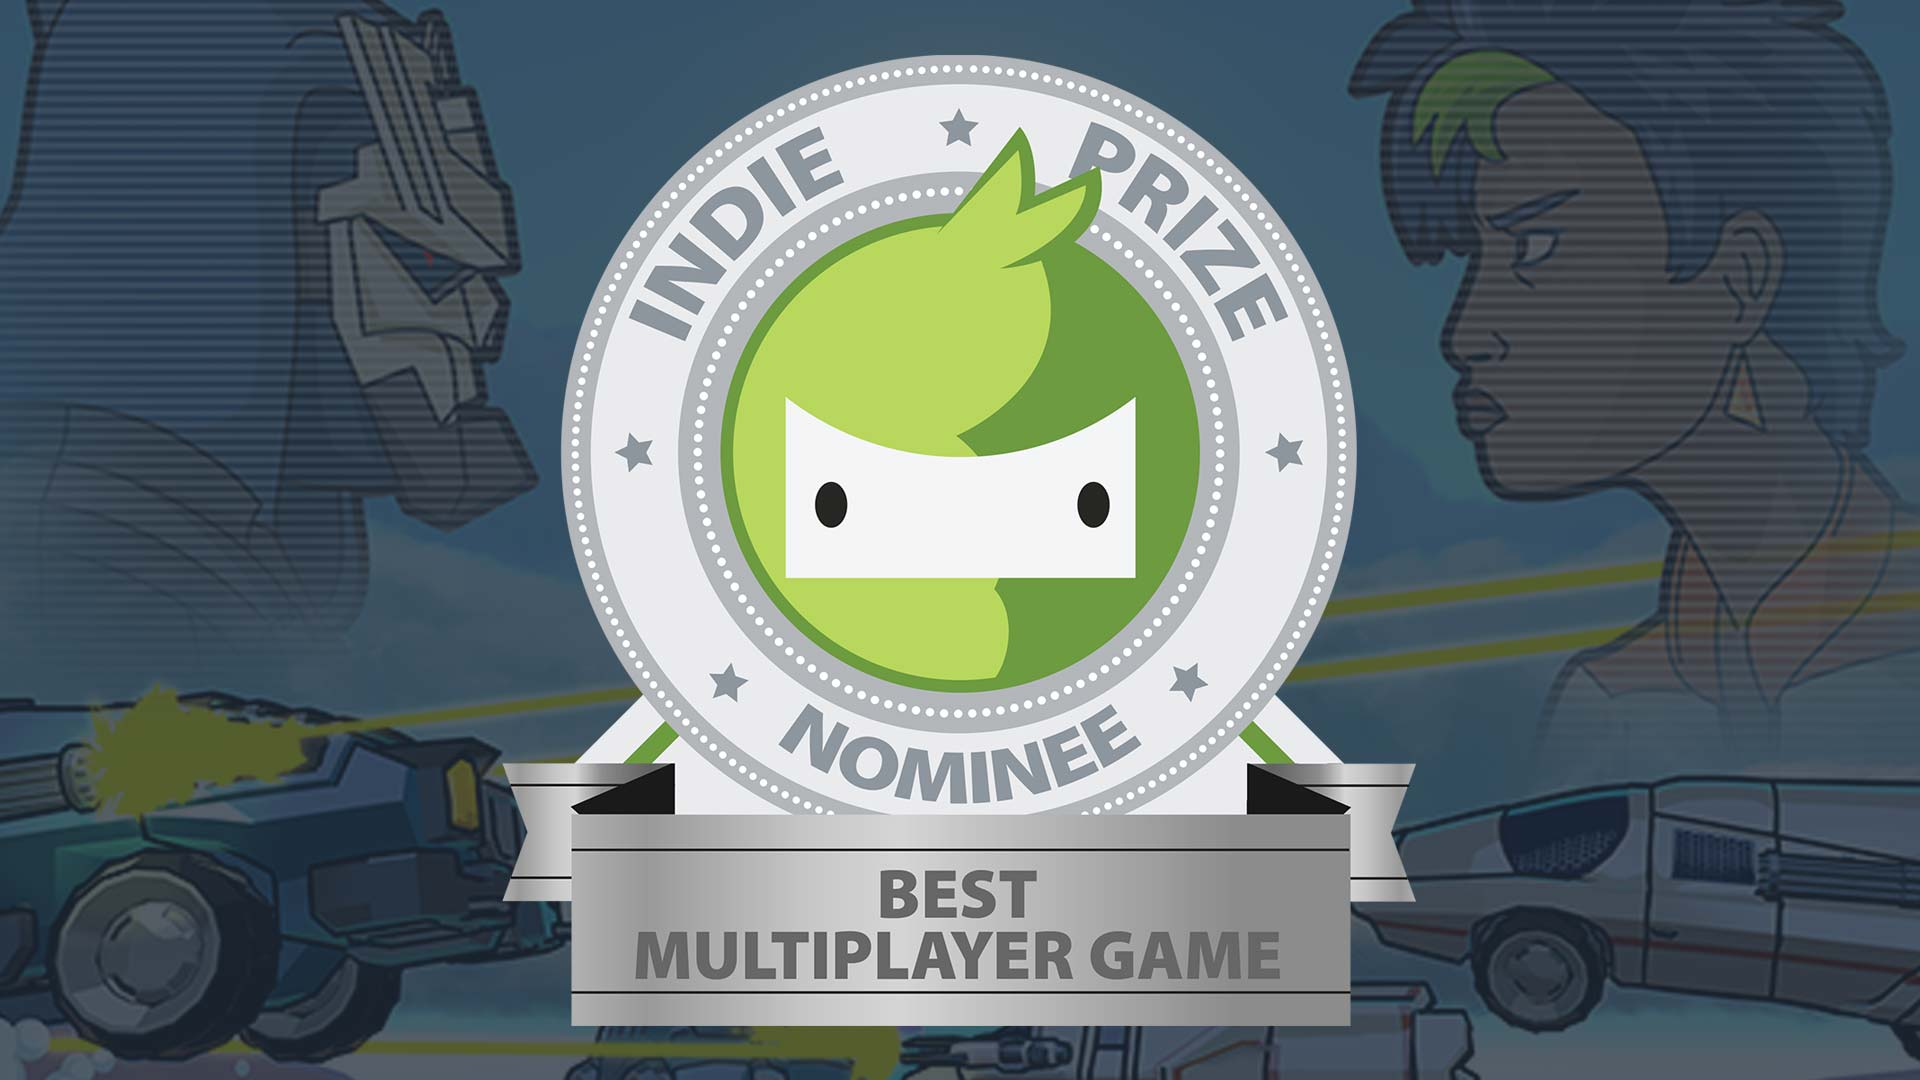 2017 - NOMINEEBEST MULTIPLAYER GAMEIndie PrizeCasual Connect USA